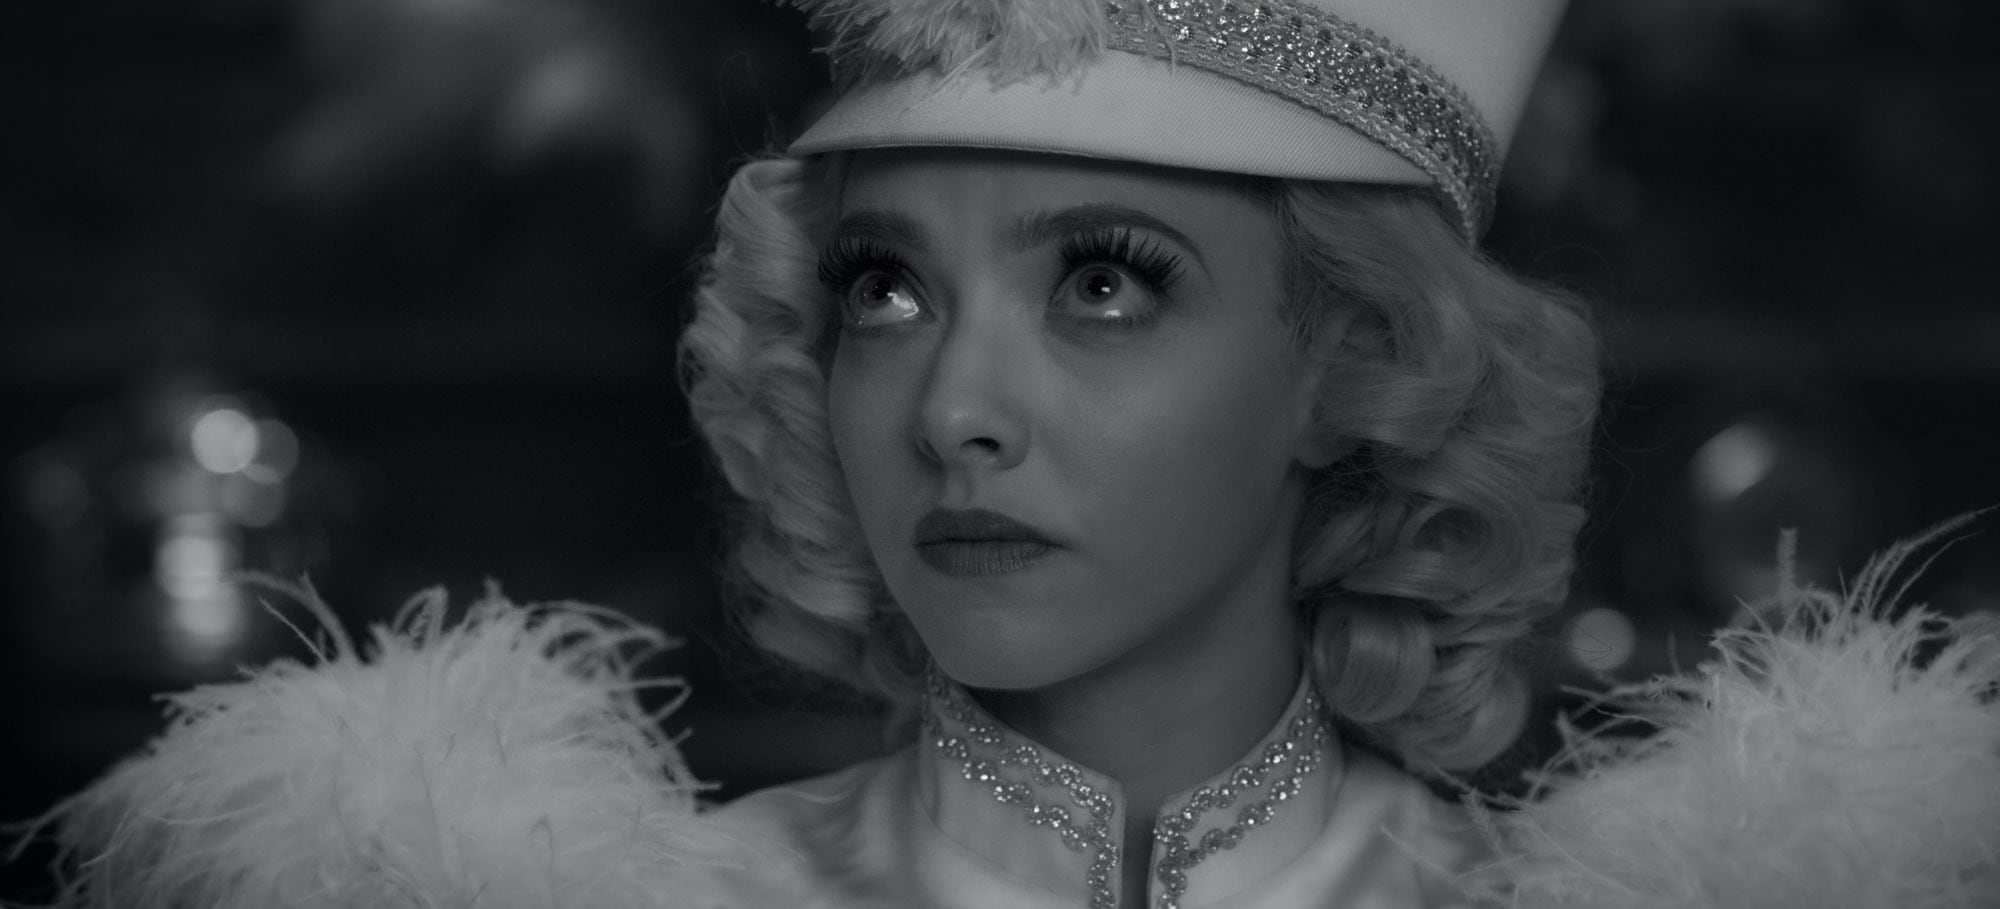 Amanda Seyfried as Marion Davies